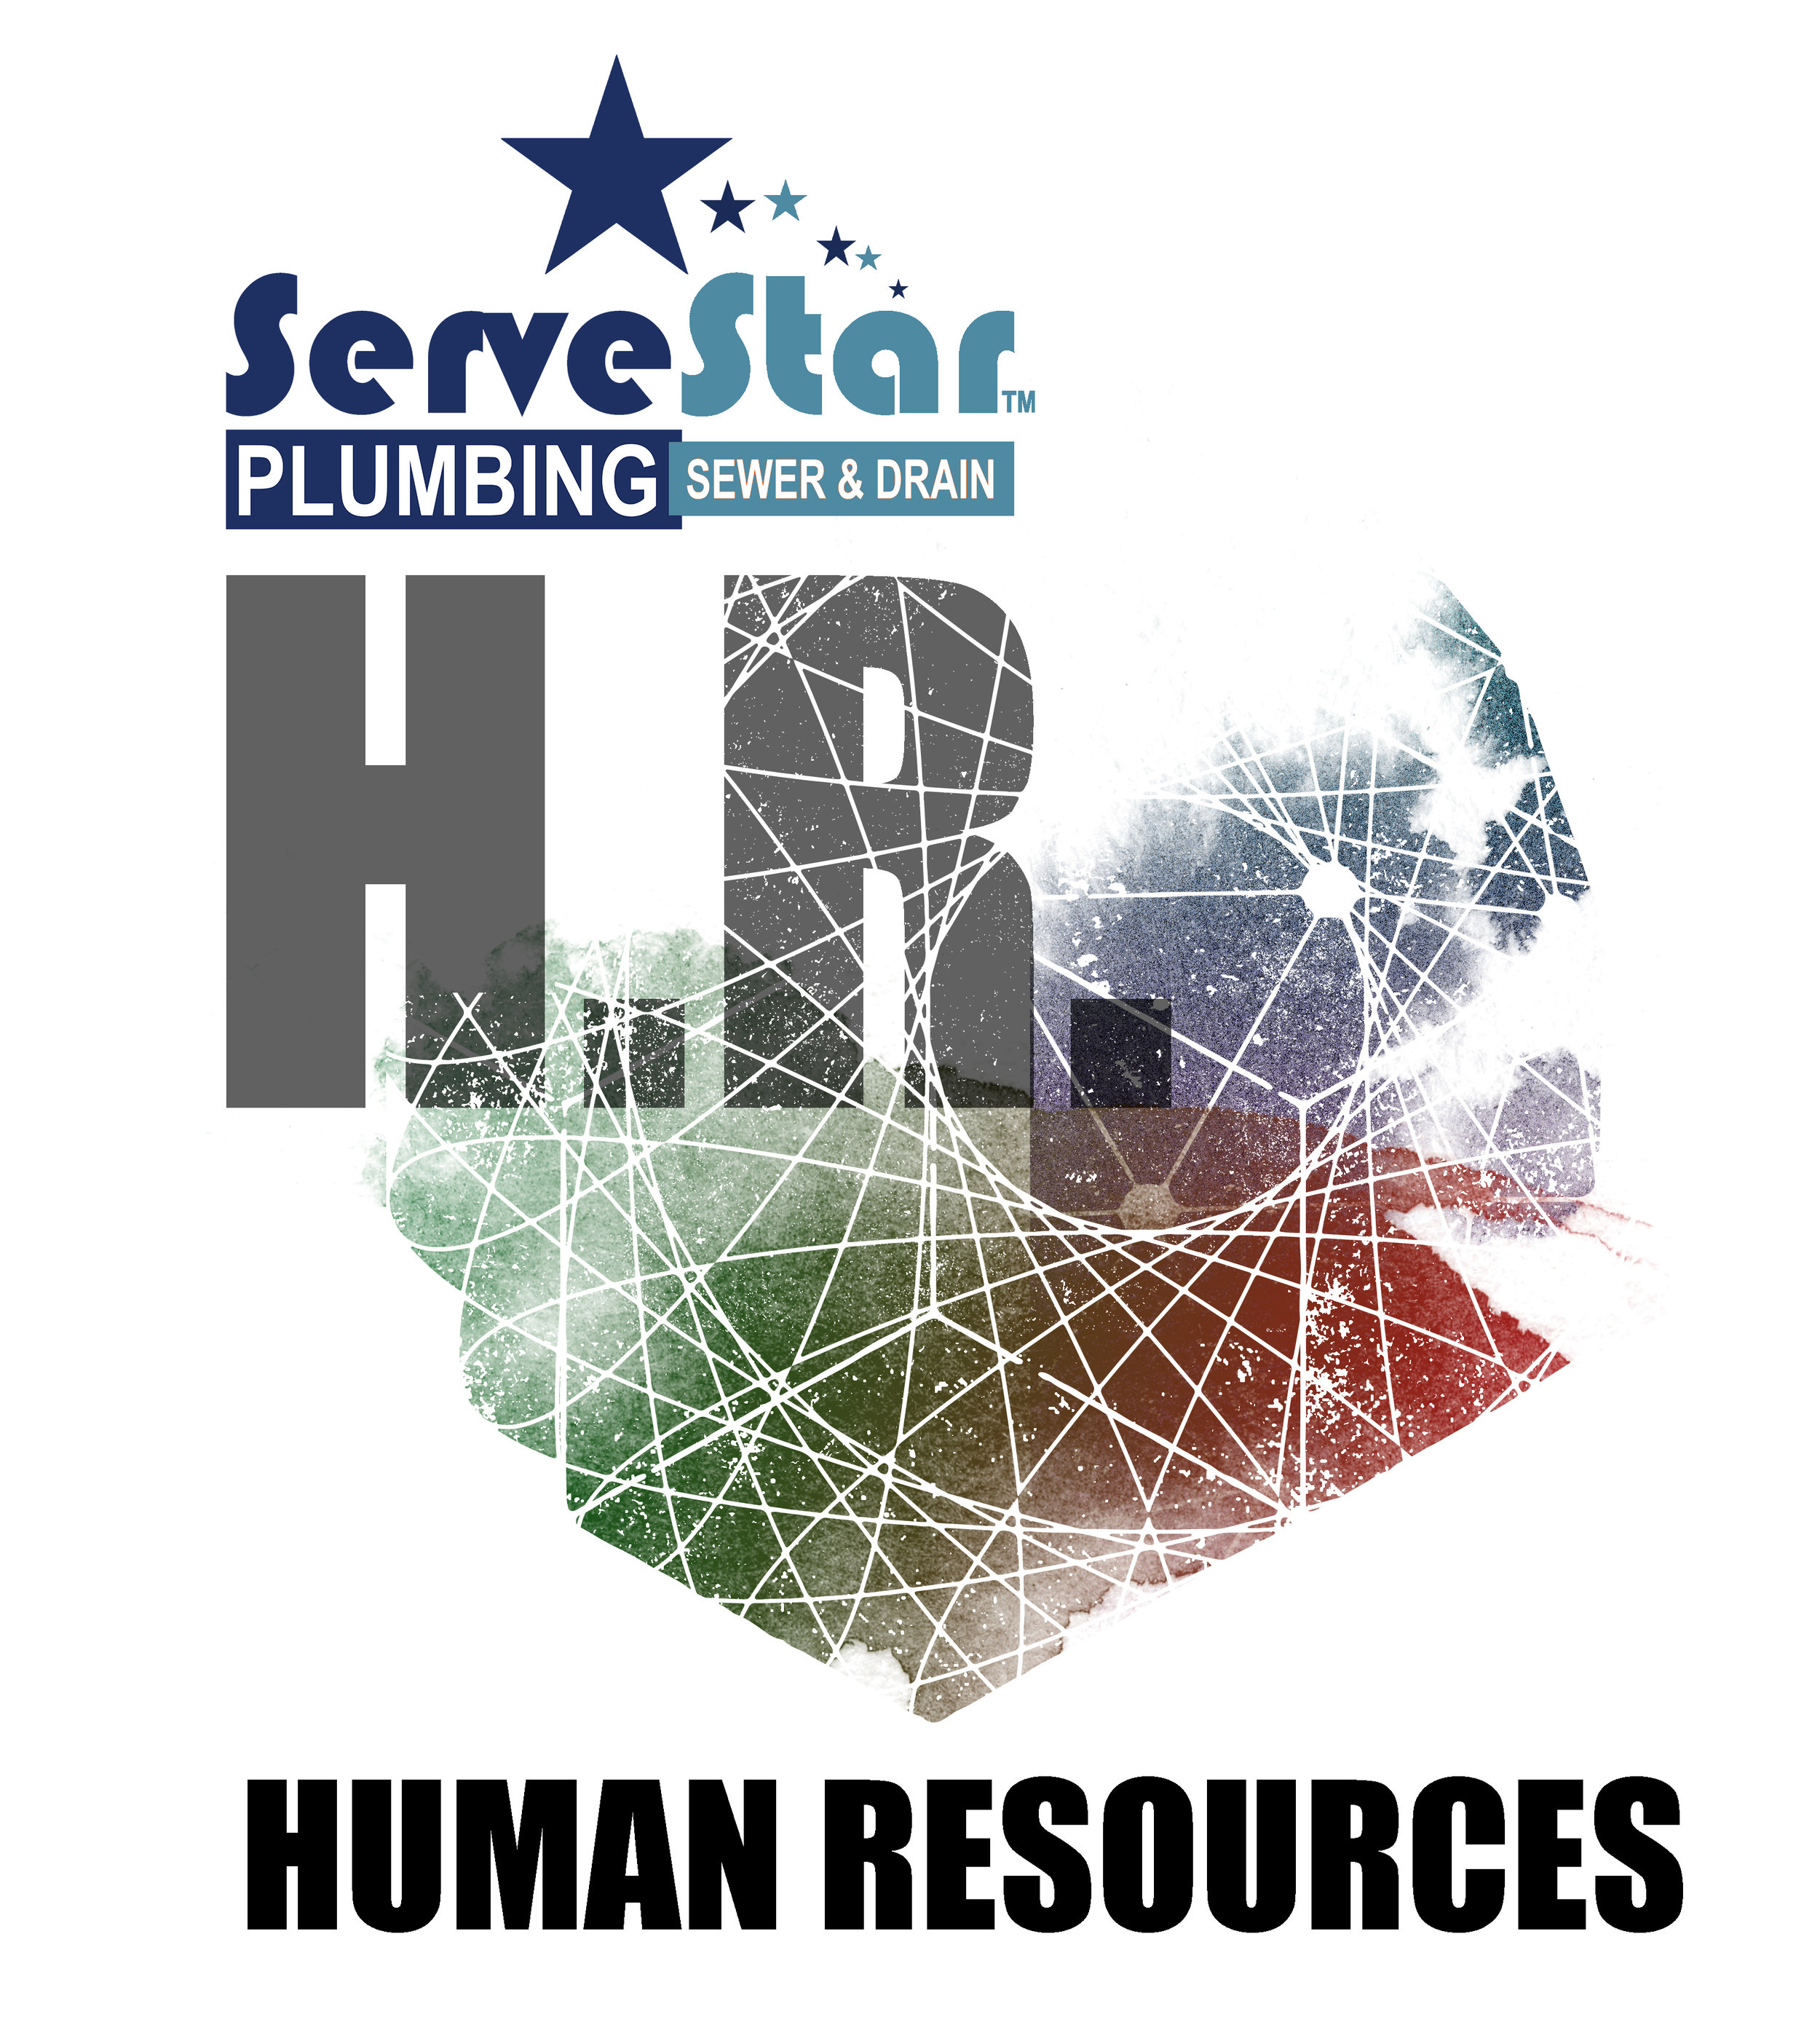 HUMAN RESOURCES LOGO 2.jpg